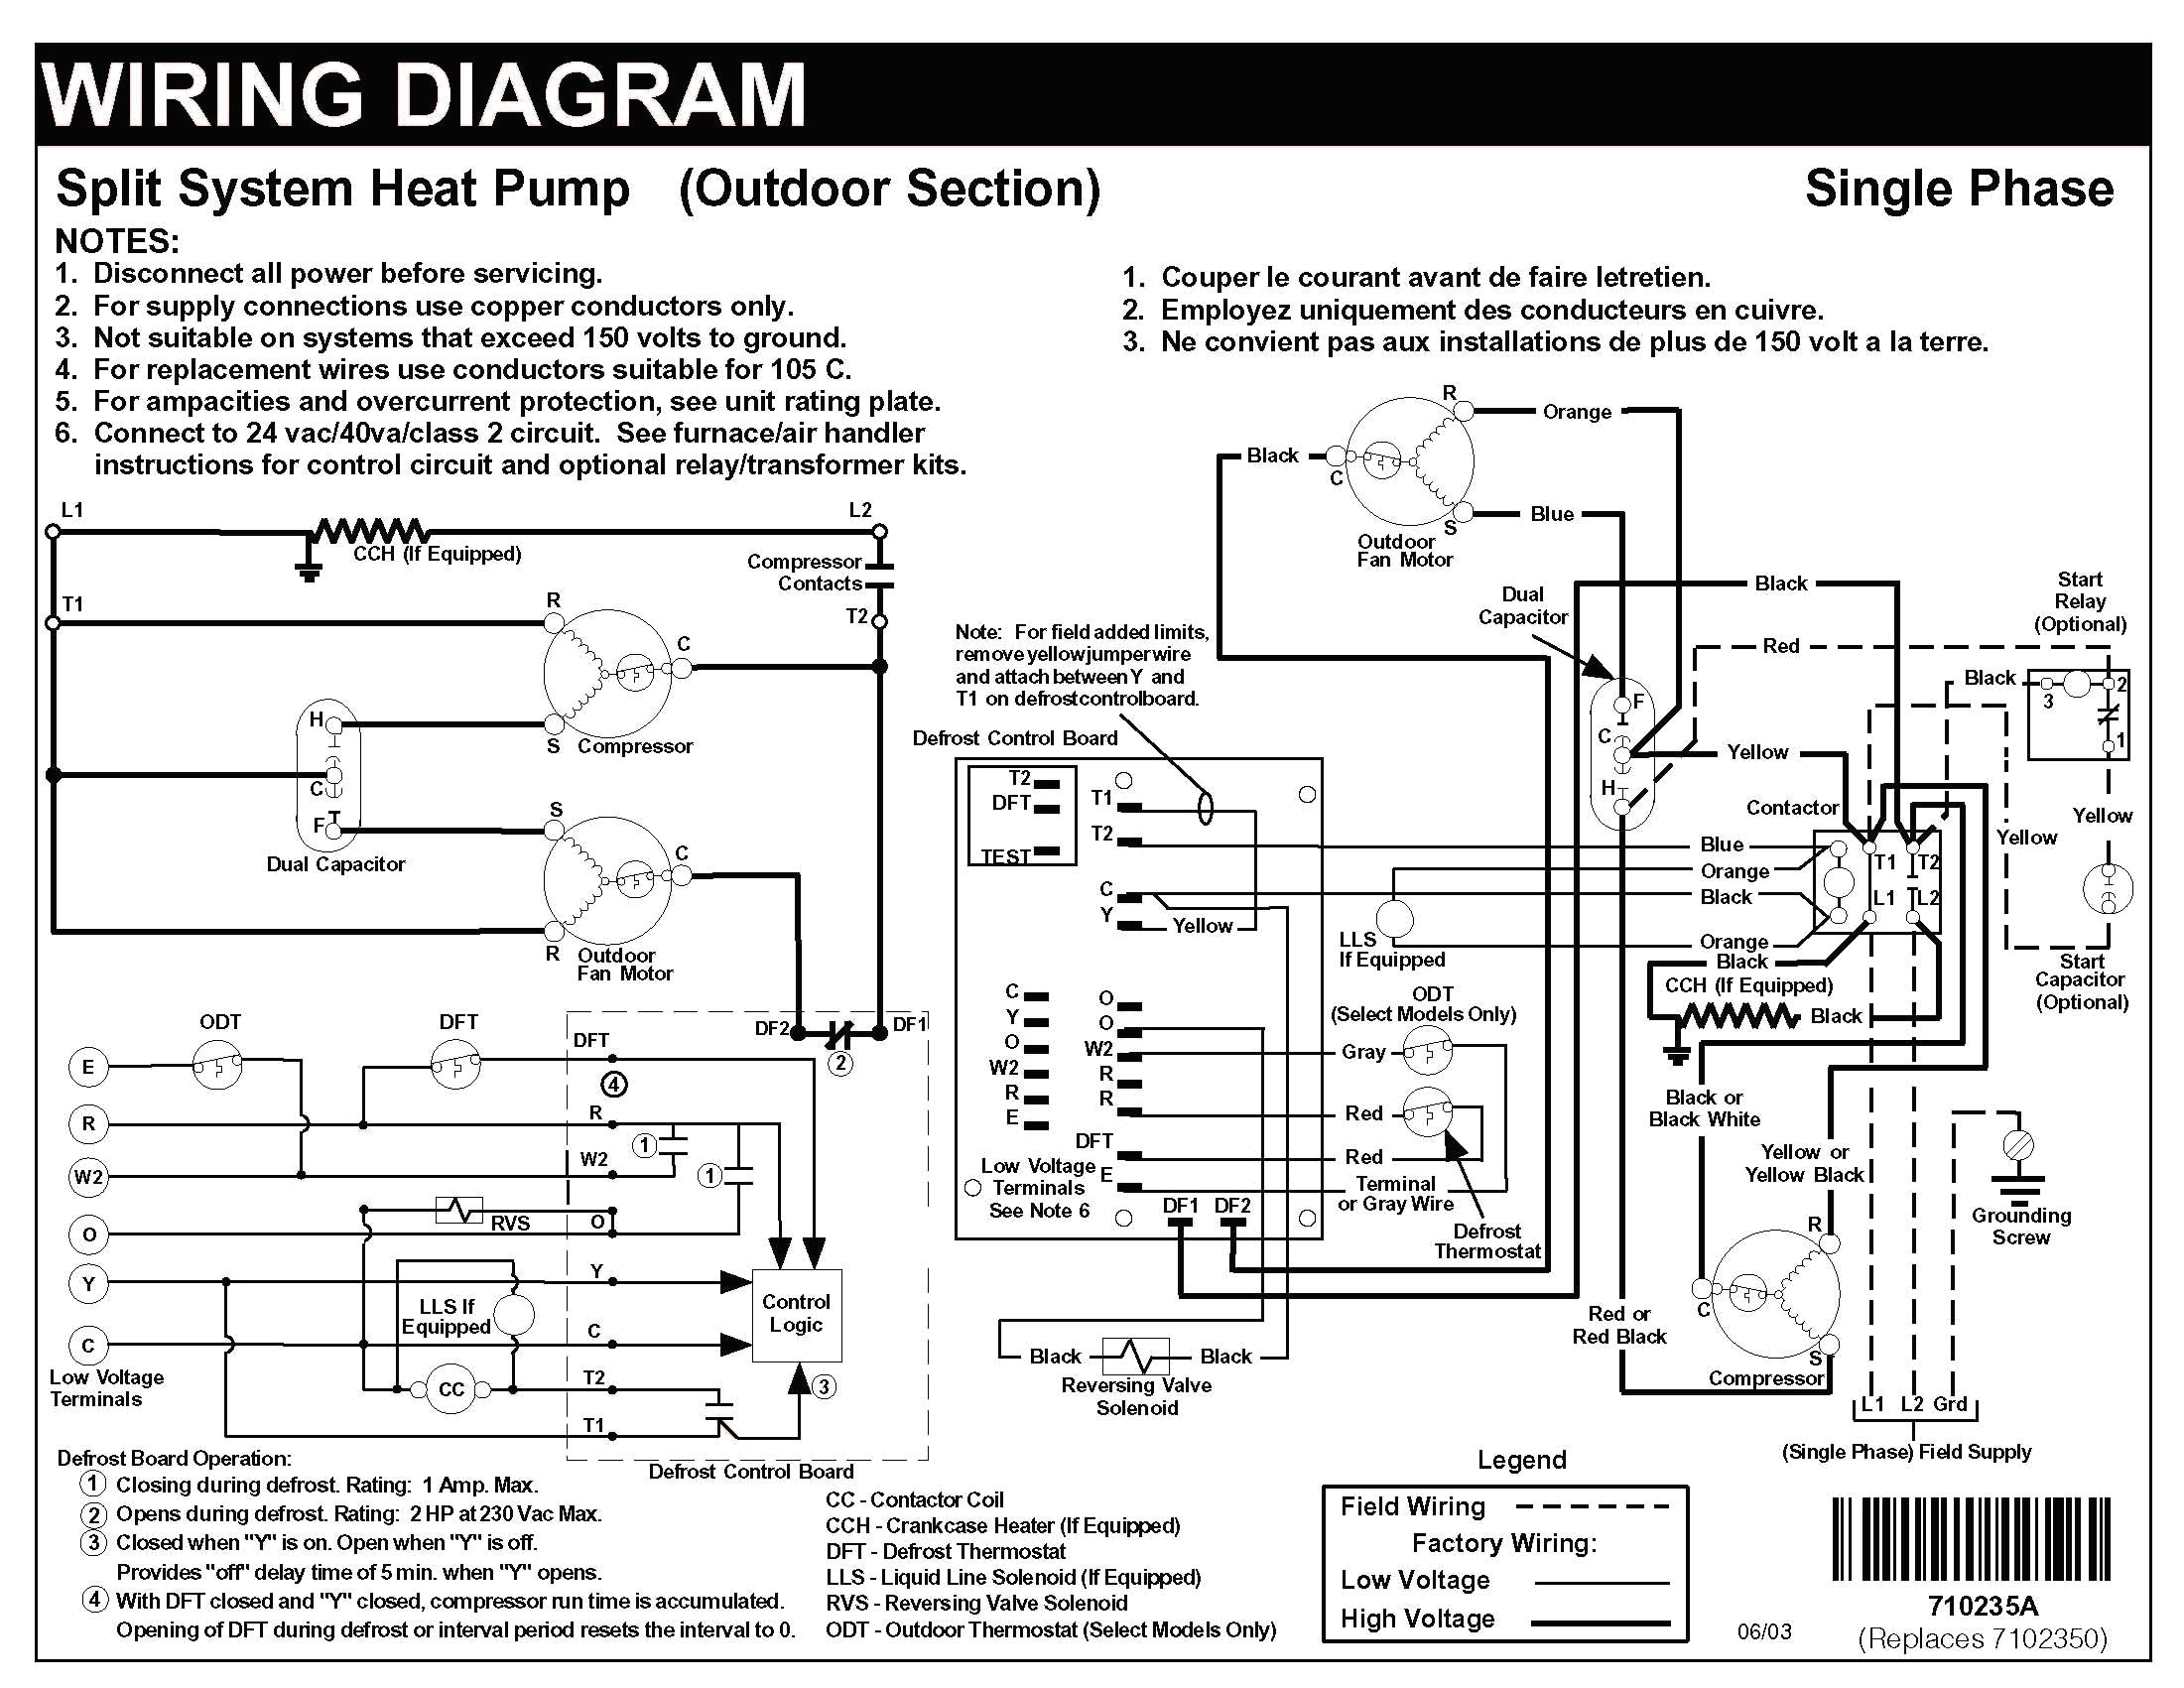 Pool Heat Pump Wiring Diagram Sample Nest Thermostat Wiring Diagram Carrier on